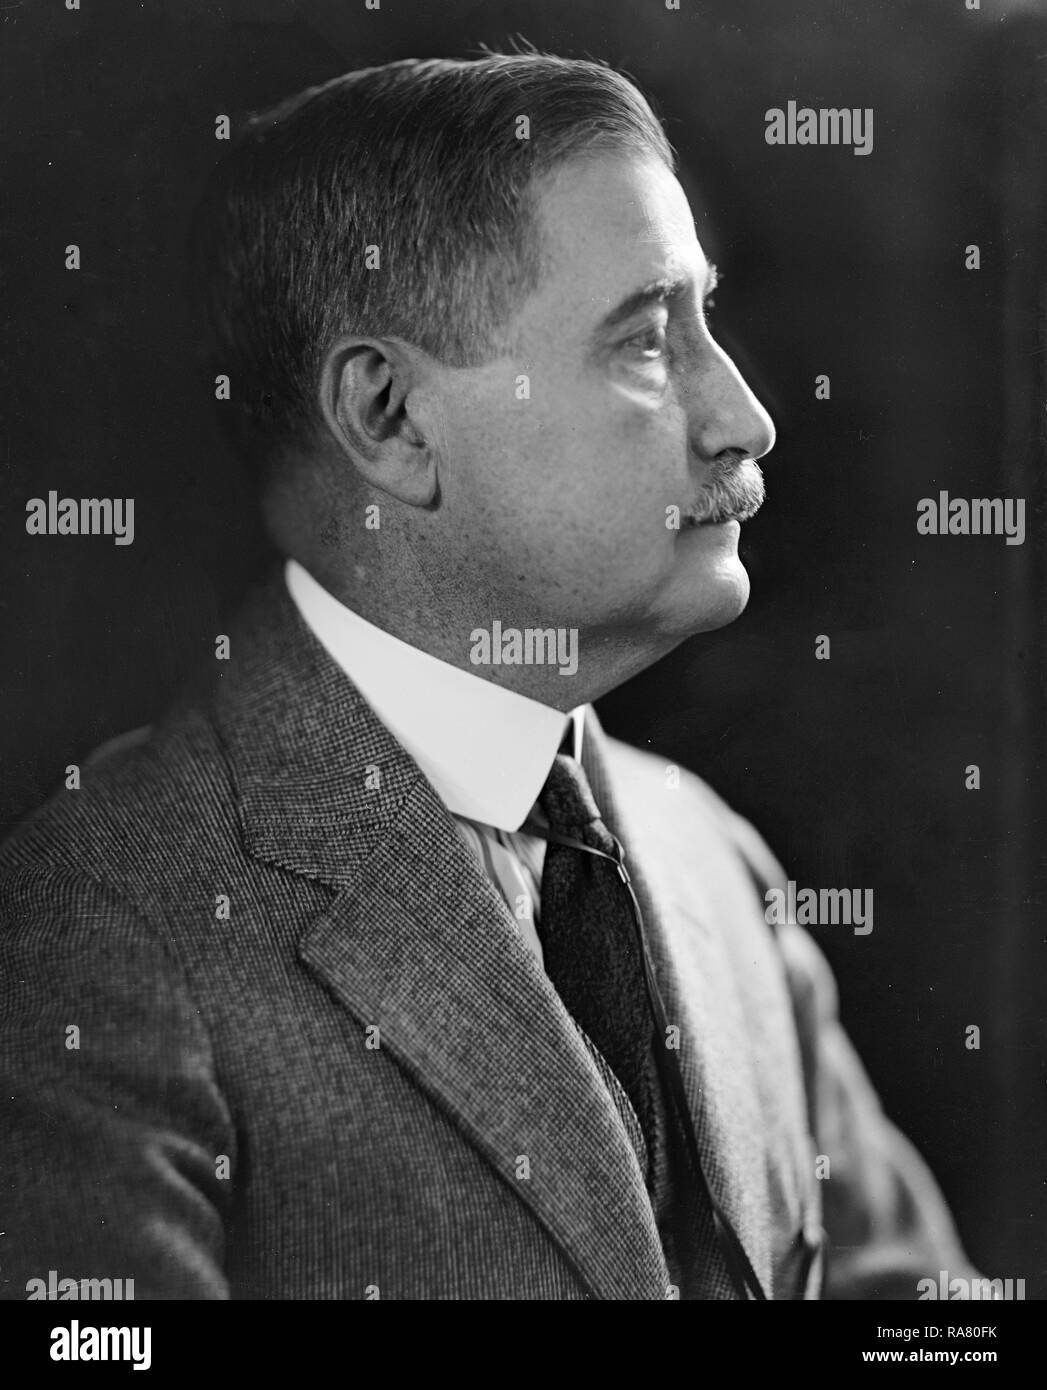 Frank Brett Noyes, one of the founders of the Associated Press ca. early1900s - Stock Image